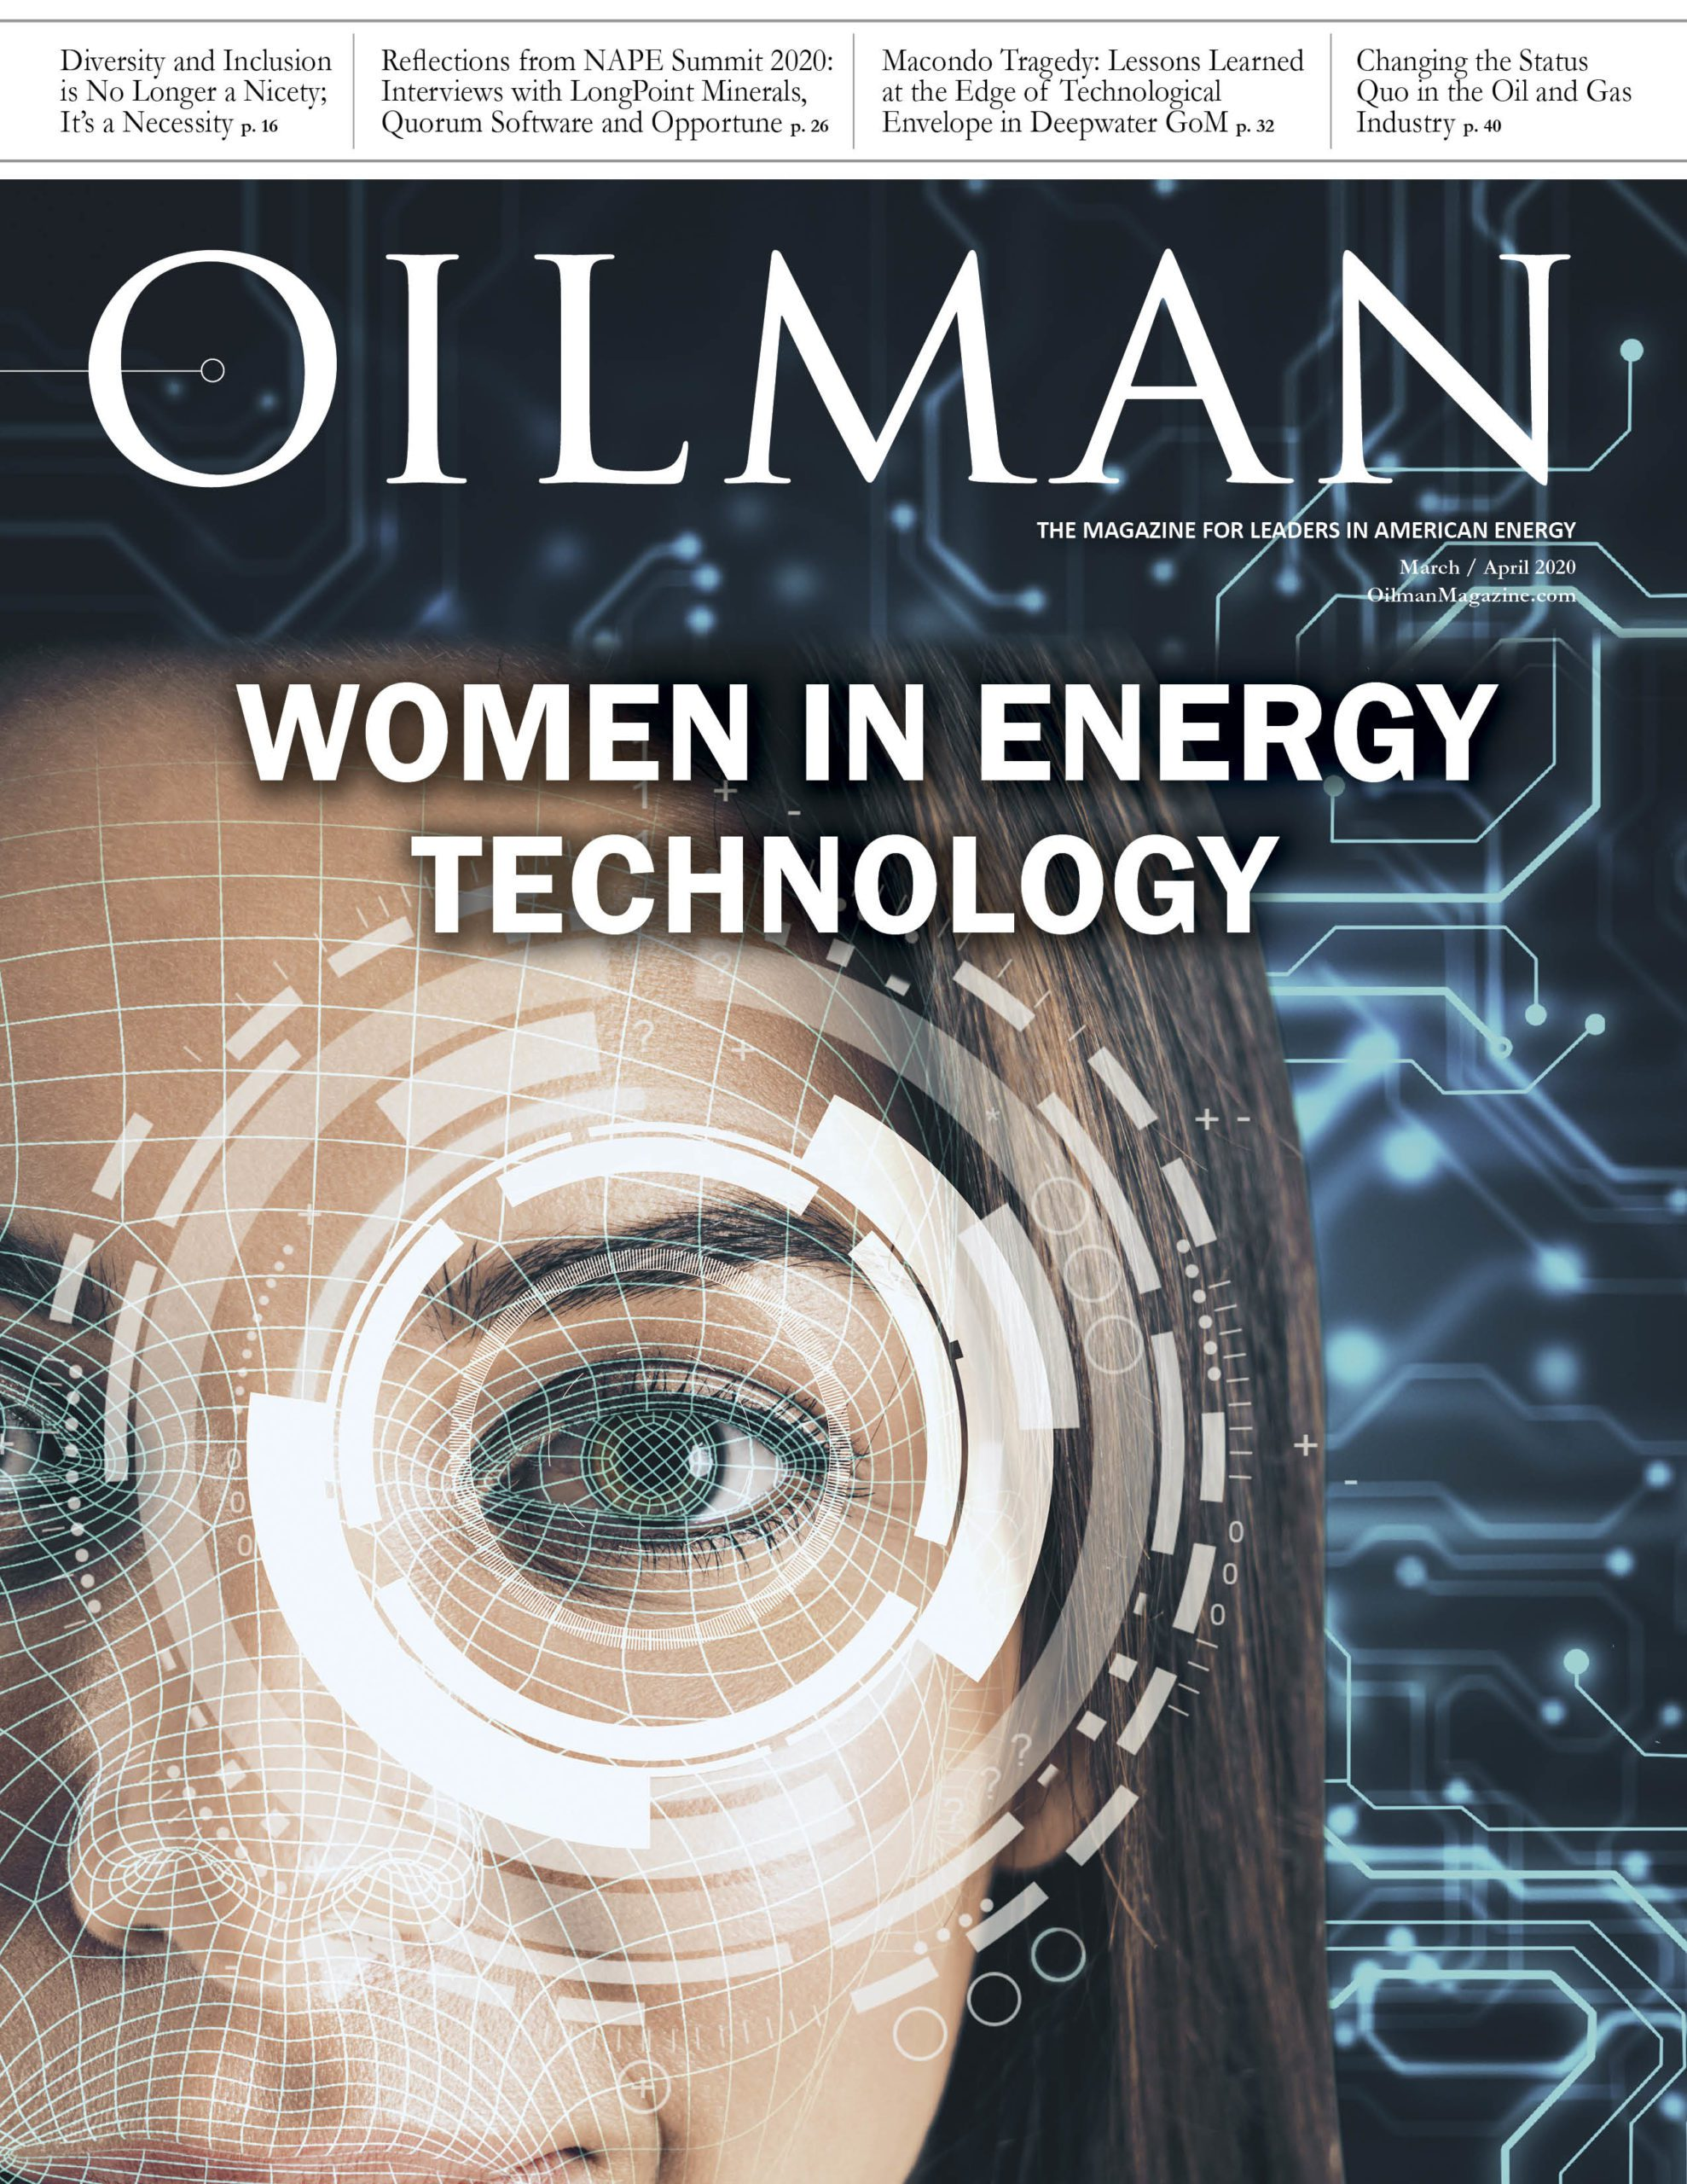 OILMAN March-April 2020